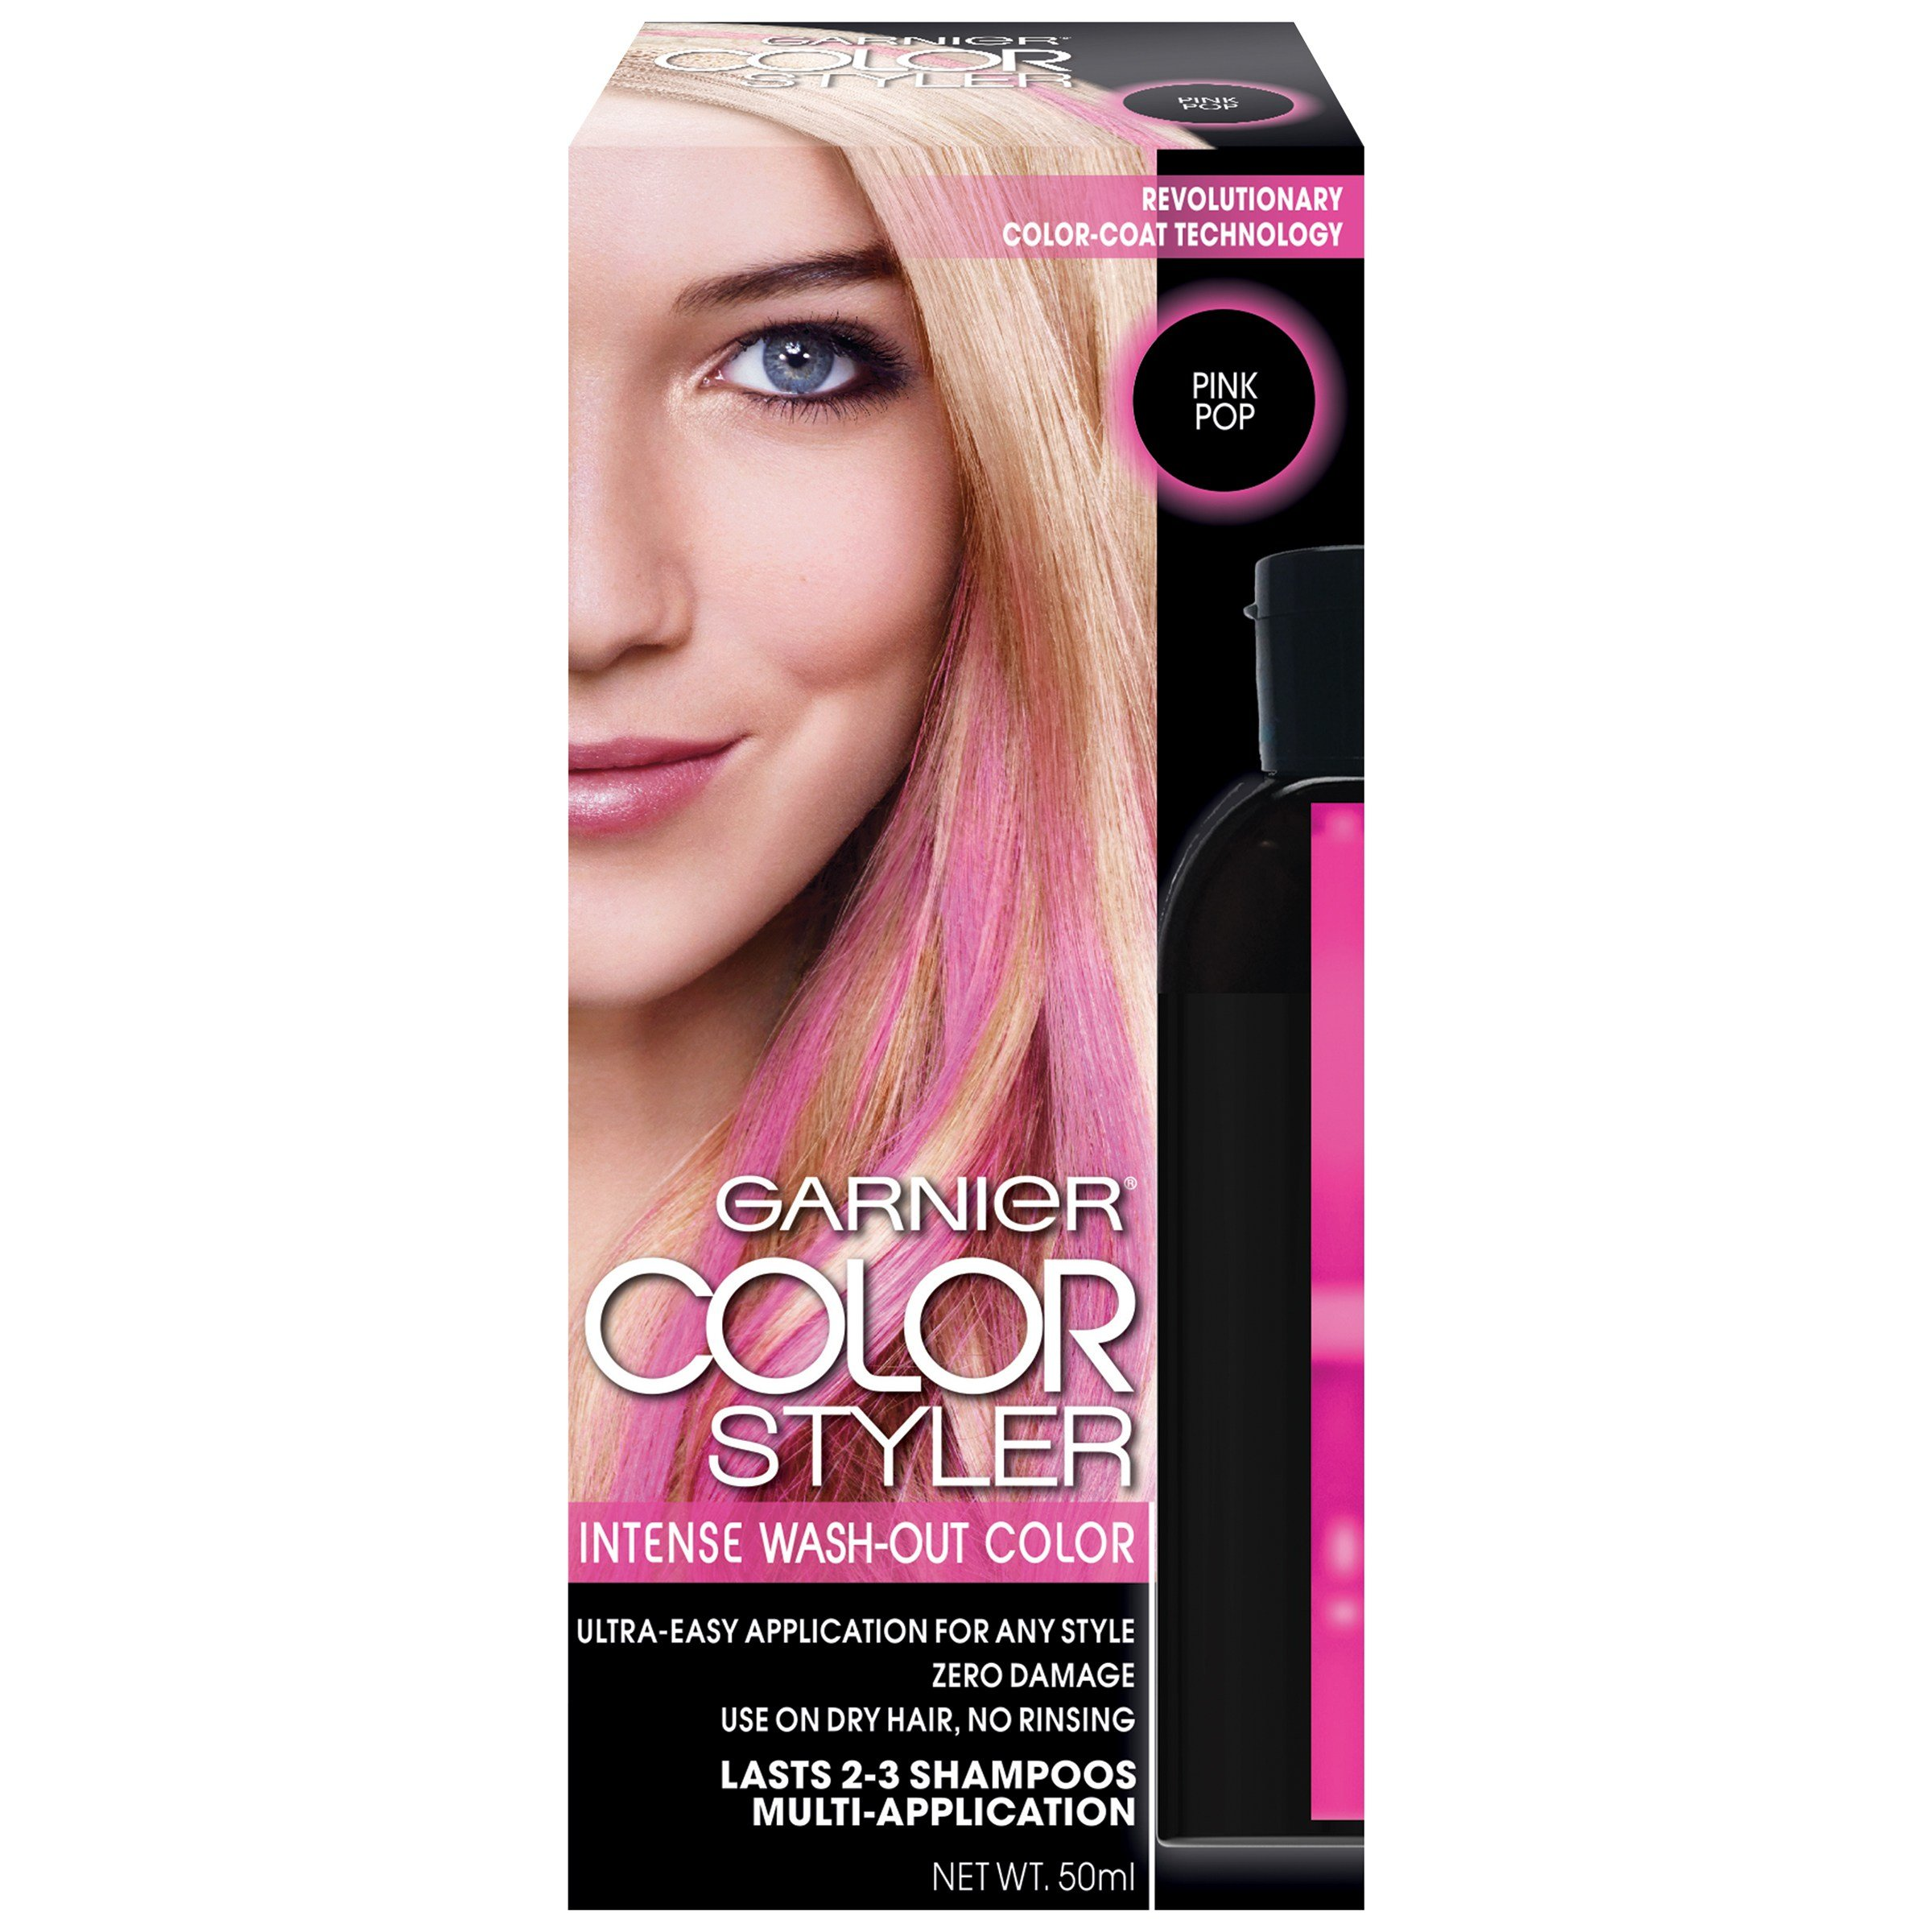 The Best Garnier Color Styler Intense Wash Out Haircolor Pink Pop 1 Pictures